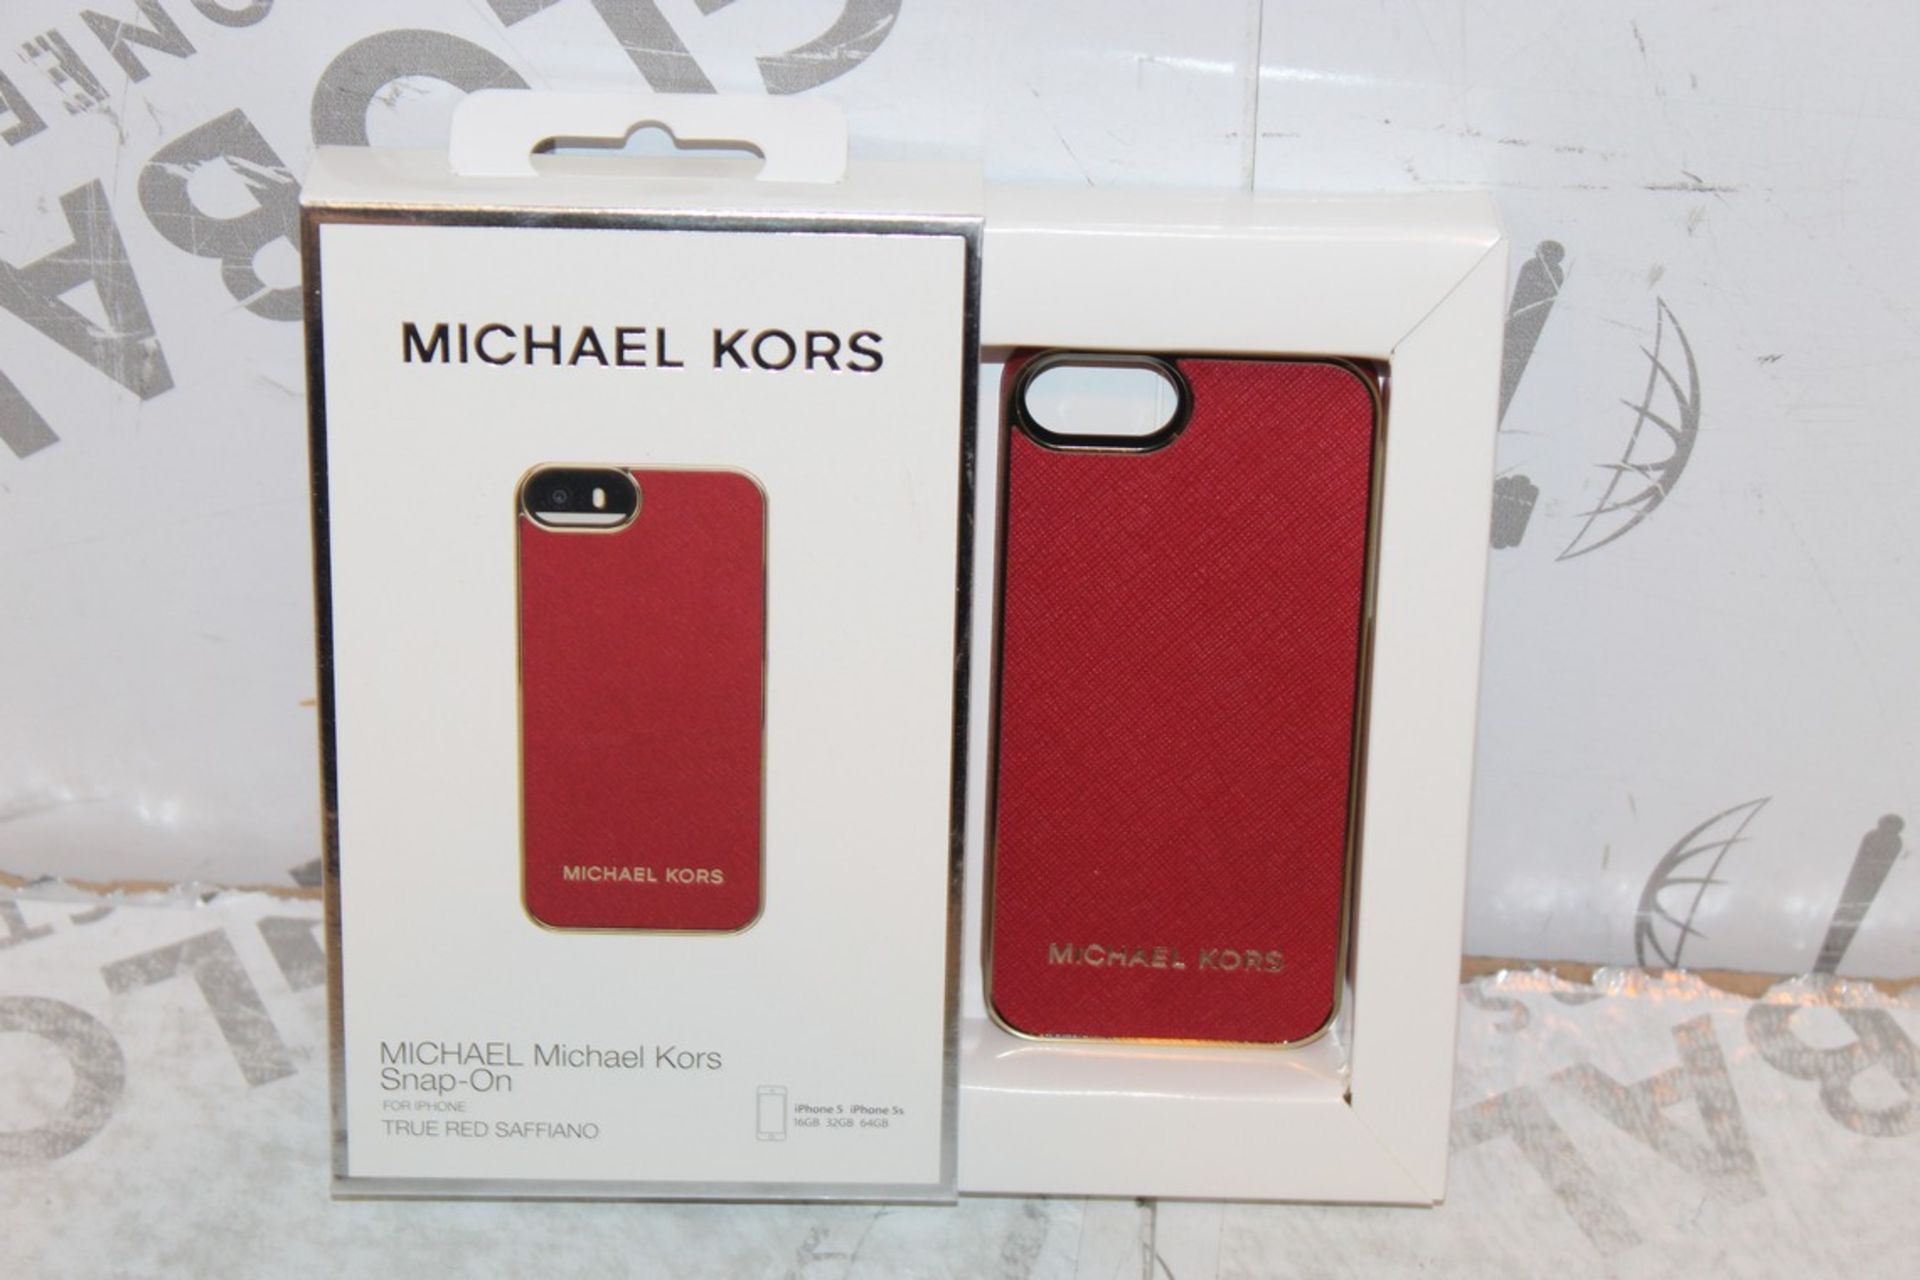 Lot 243 - Lot to Contain 2 Brand New Michael Kors iPhone 5 Snap on Phone Cases Combined RRP £40